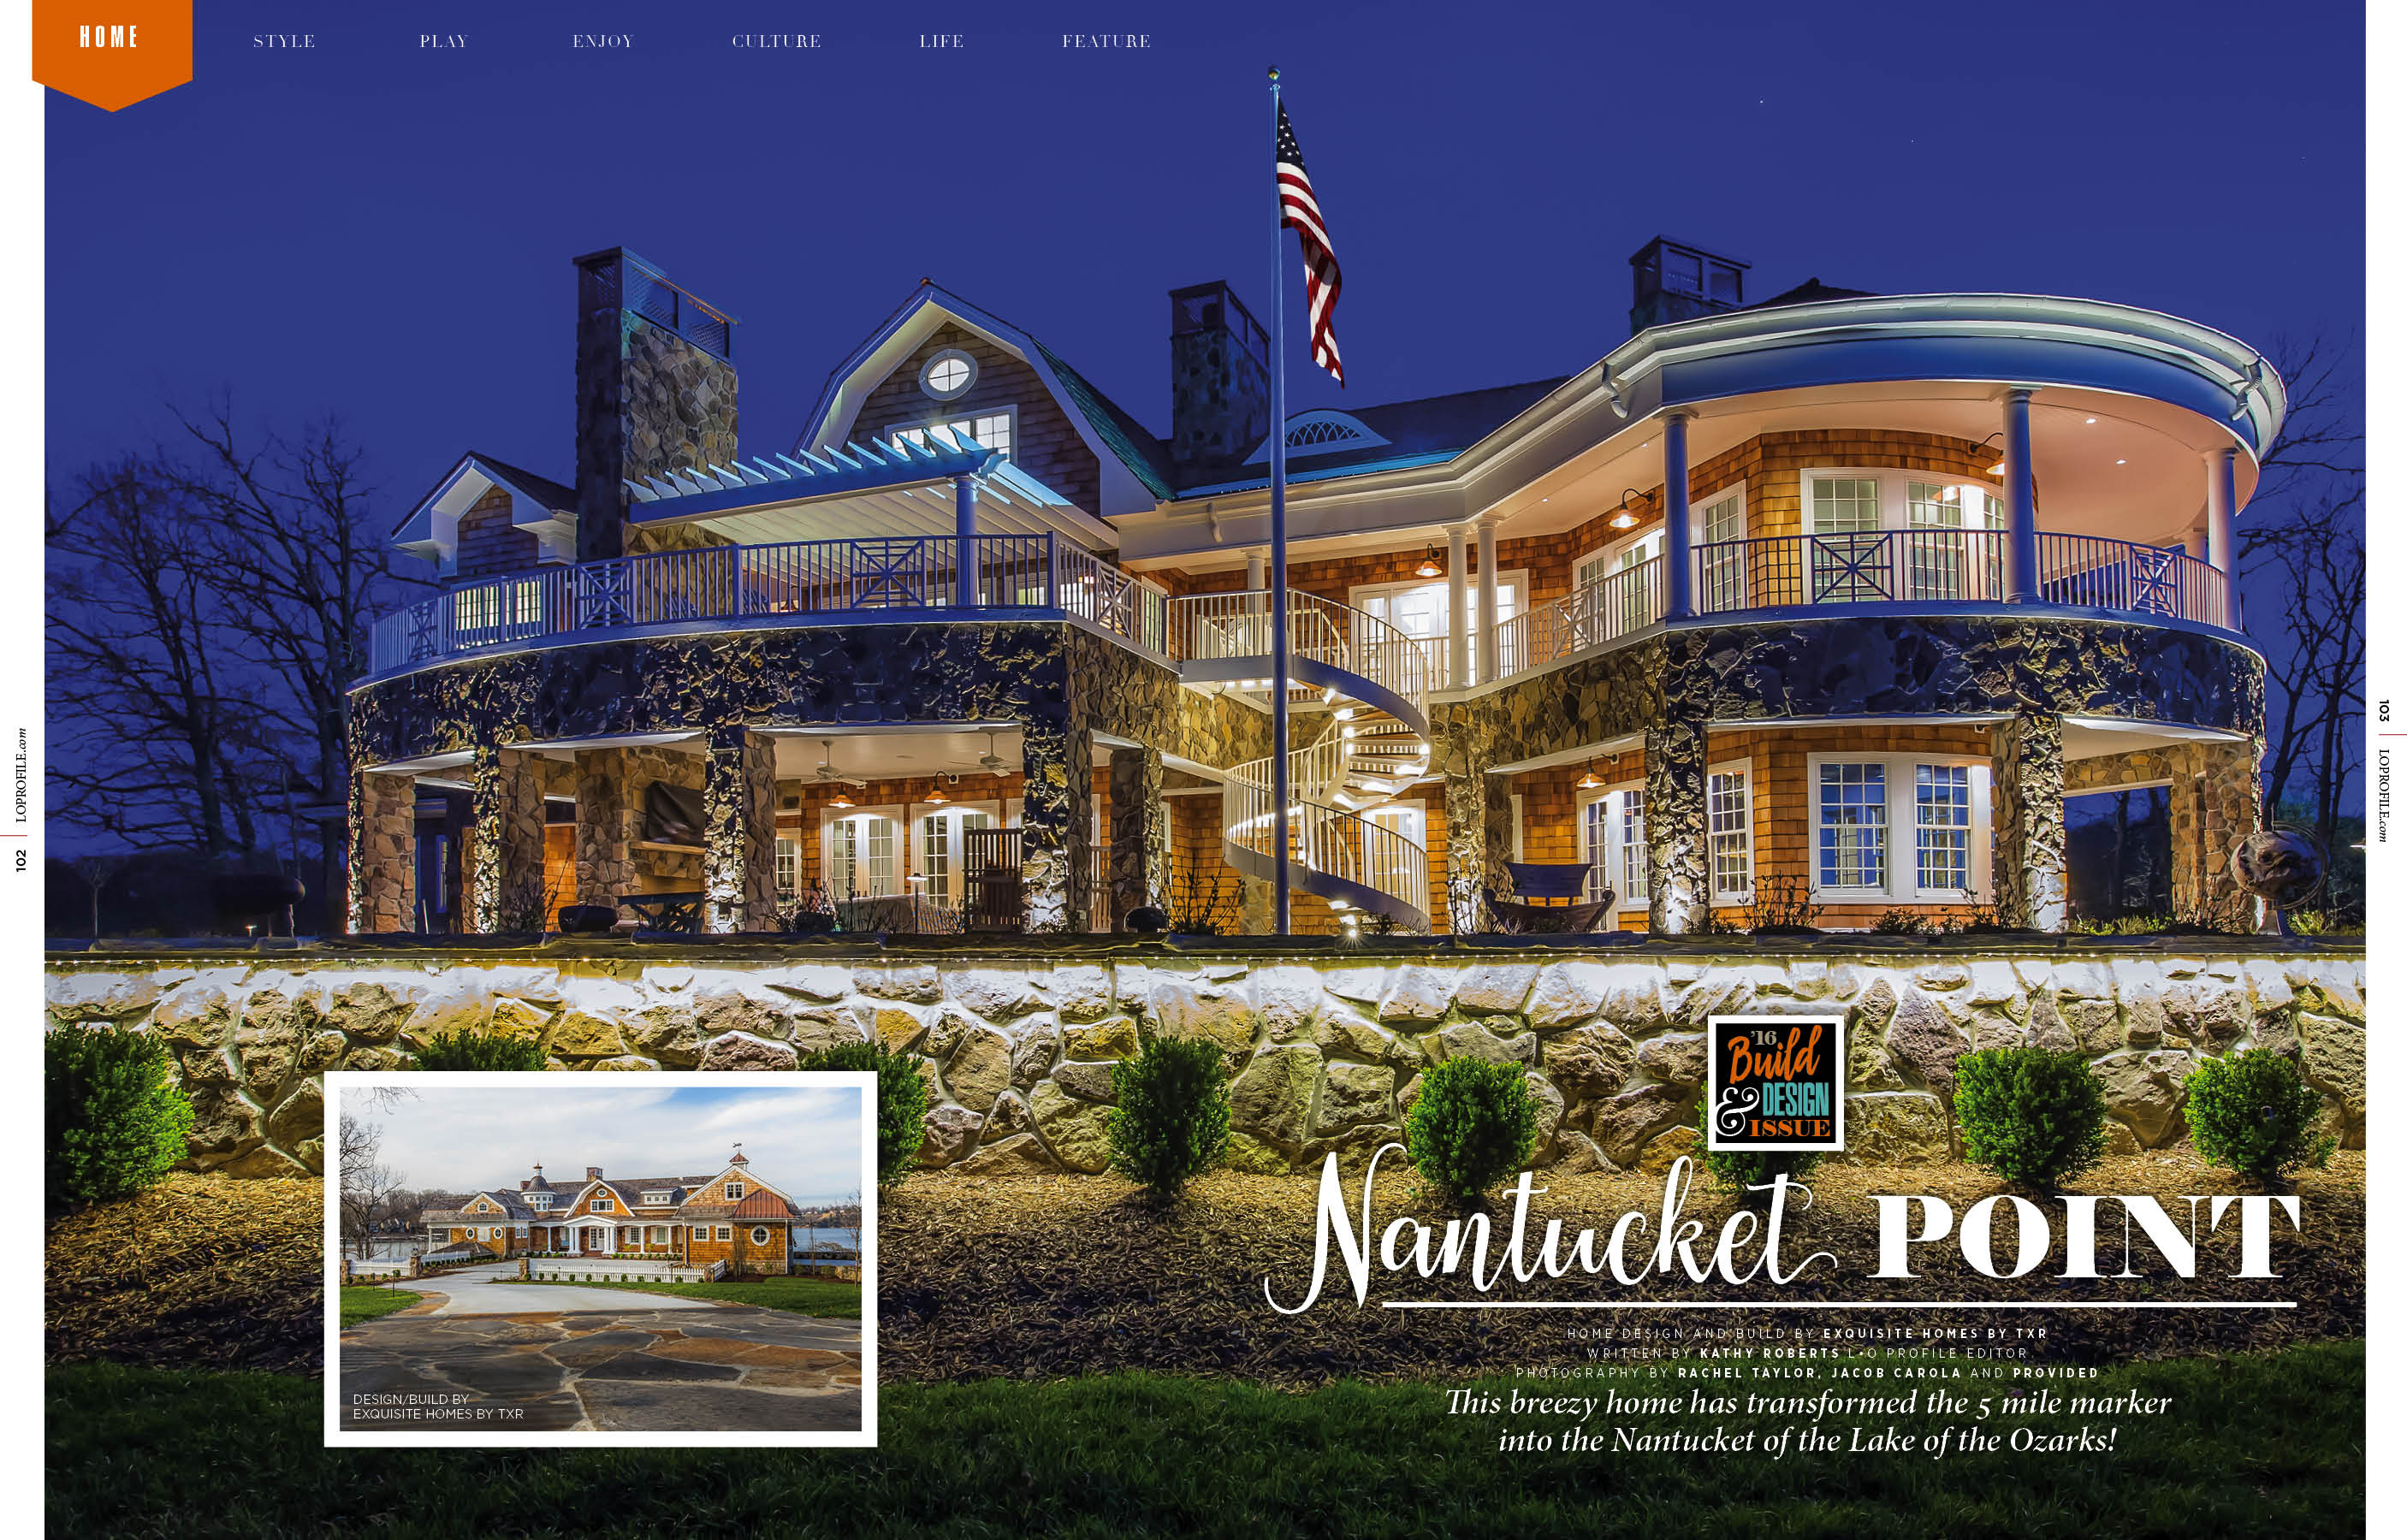 Home Feature- Nantucket Point on lake cabin house plans, mobile home cabin plans, lake home house plans, country home cabin plans, lake view cabin plans, lake home loft plans, lake home ranch plans, lake home deck plans, lake cottage house plans, small lake cabin plans, lake home duplex plans, lake home open floor plans,